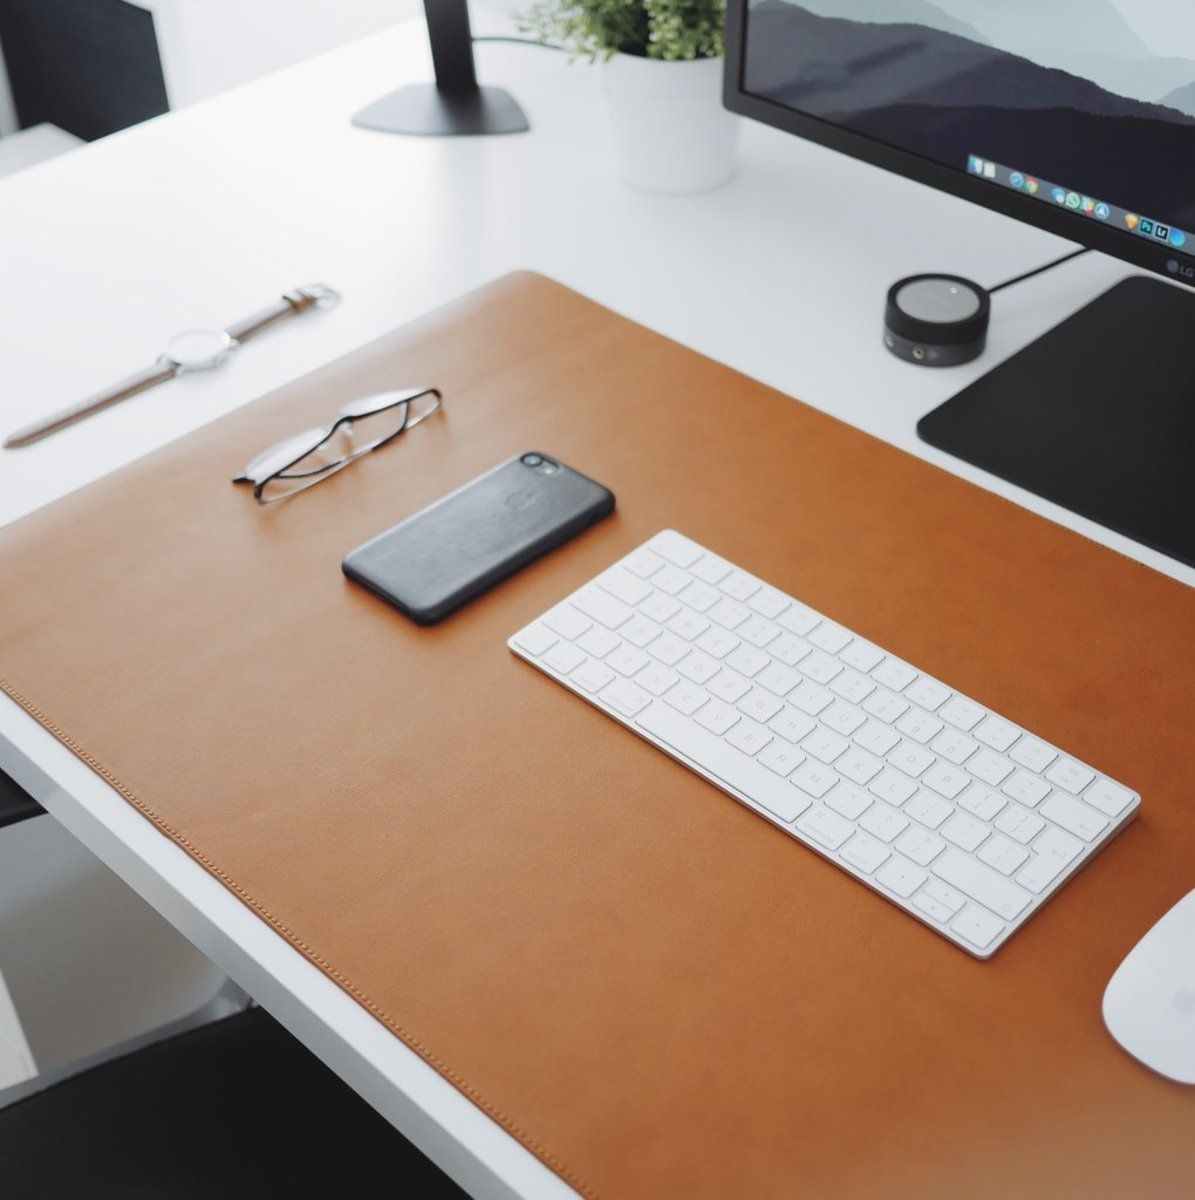 These Clean Minimal Desk Mats Will Perfectly Complement Any Workspace Leather Desk Desk Mat Minimal Desk